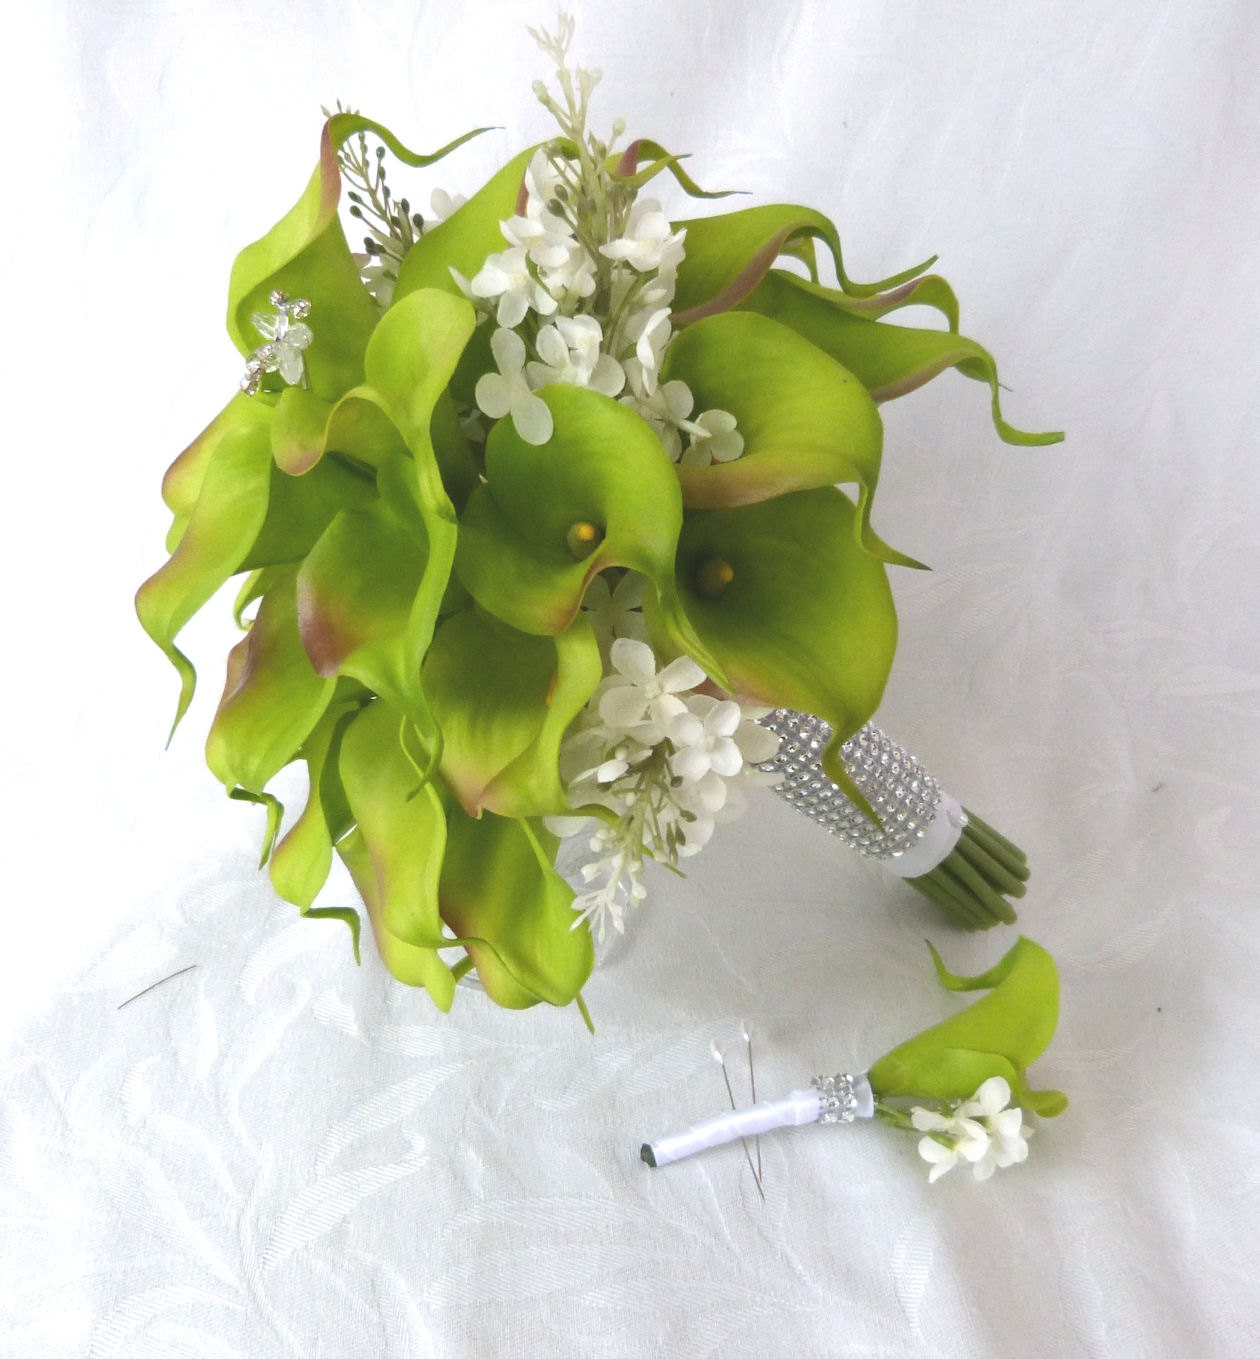 Lily Flower Wedding Bouquet: Green Calla Lily Wedding Bouquet Simple Elegant Real Touch